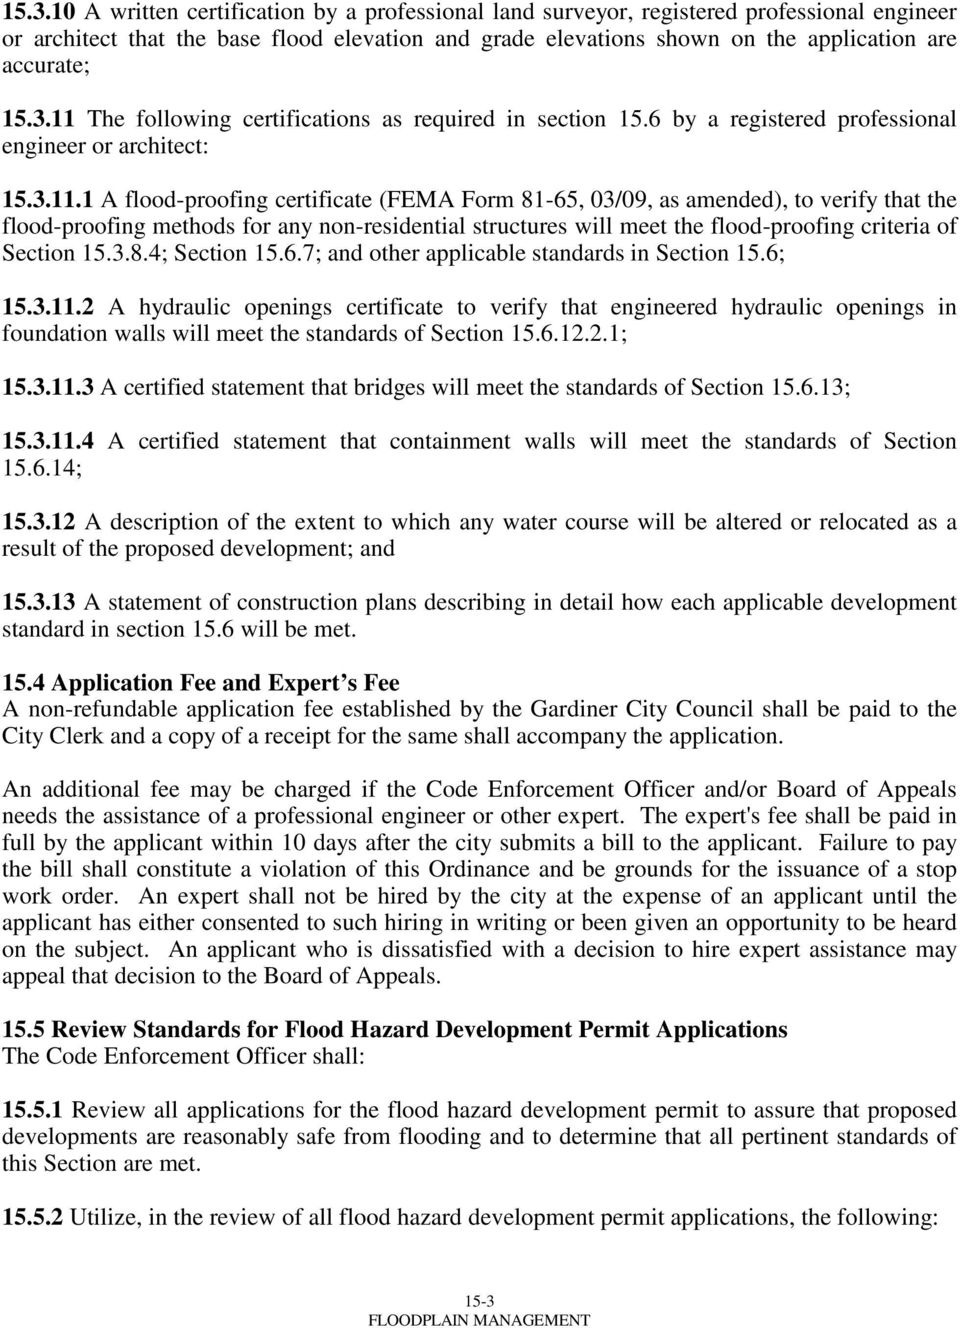 The following certifications as required in section 15.6 by a registered professional engineer or architect: 15.3.11.